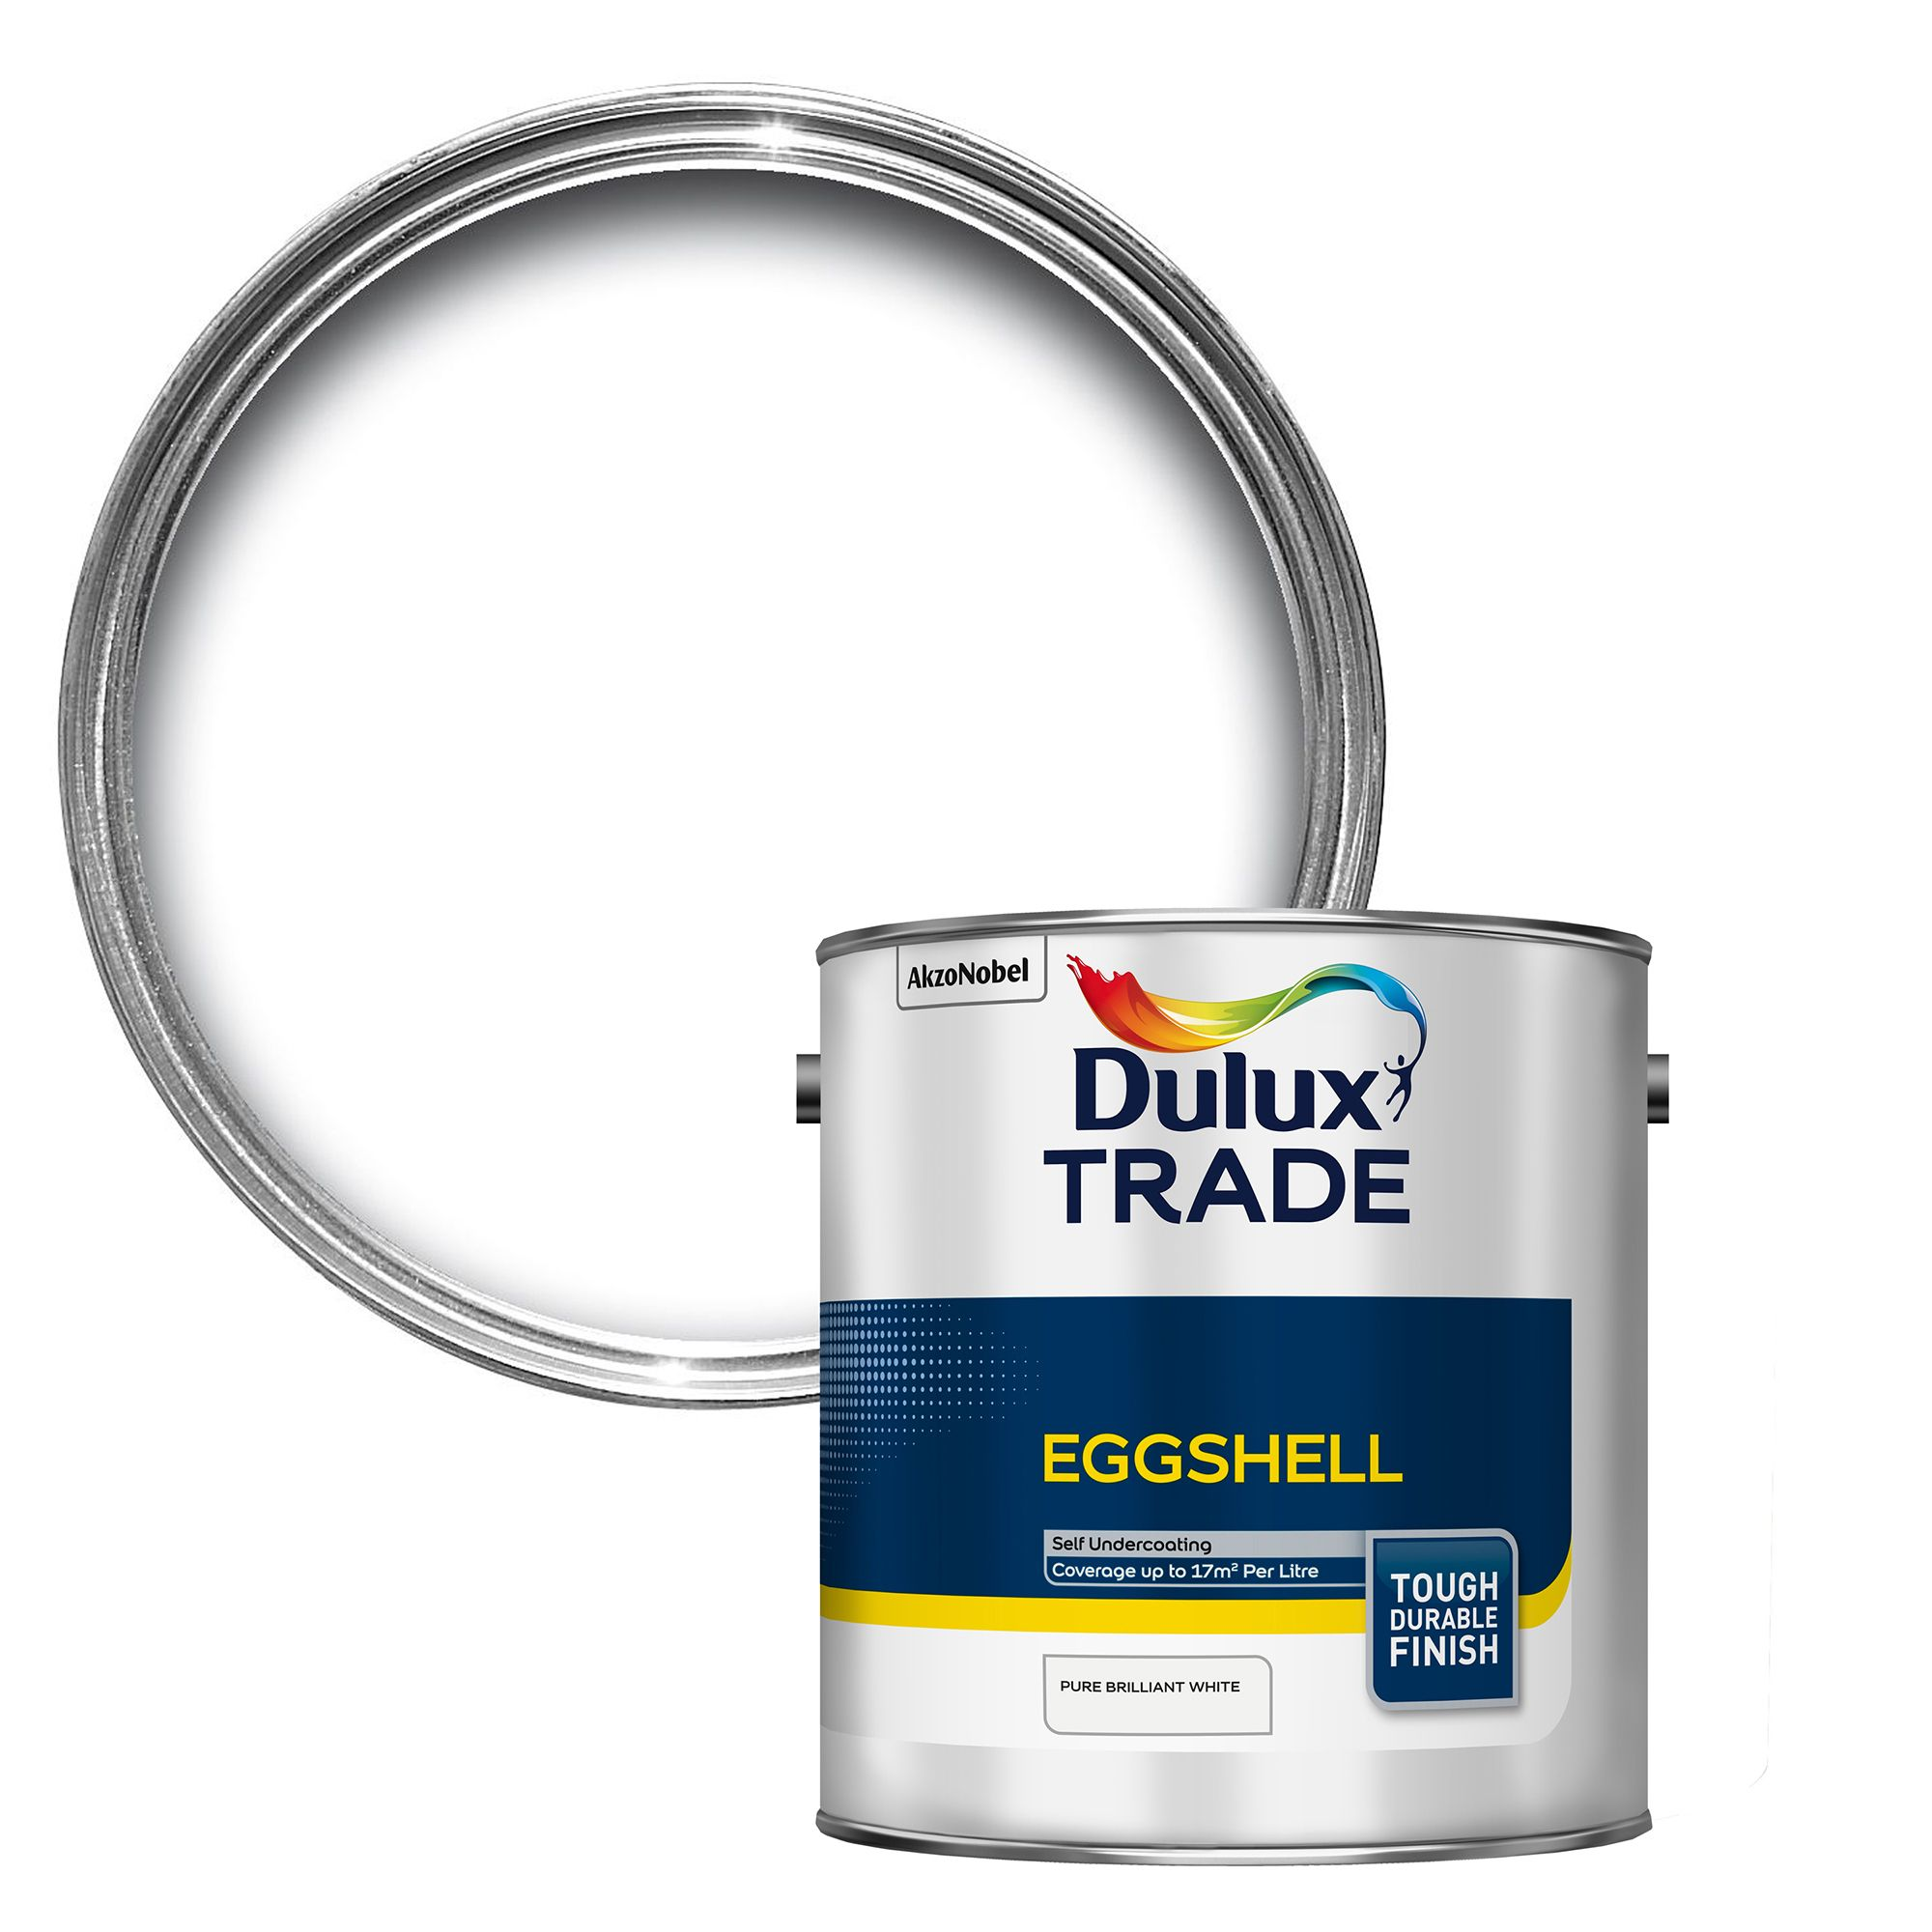 Dulux Paint For Plastic Pipes